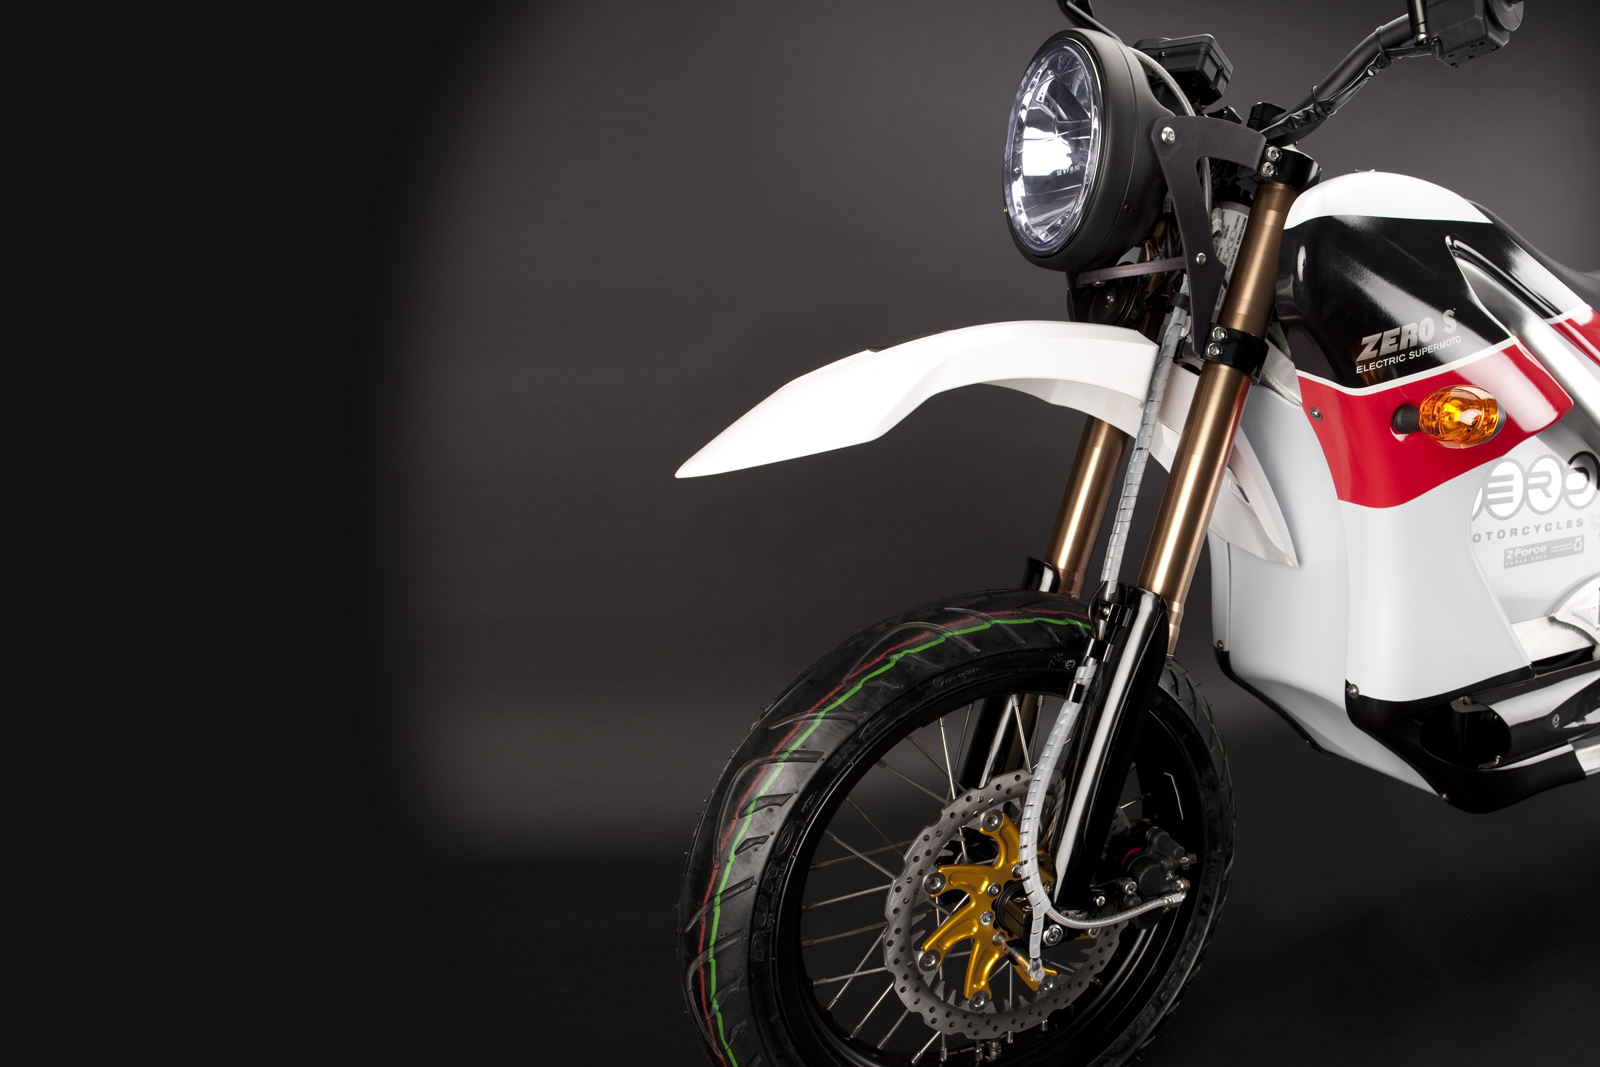 2010 Zero S Electric Motorcycle: Front Fork